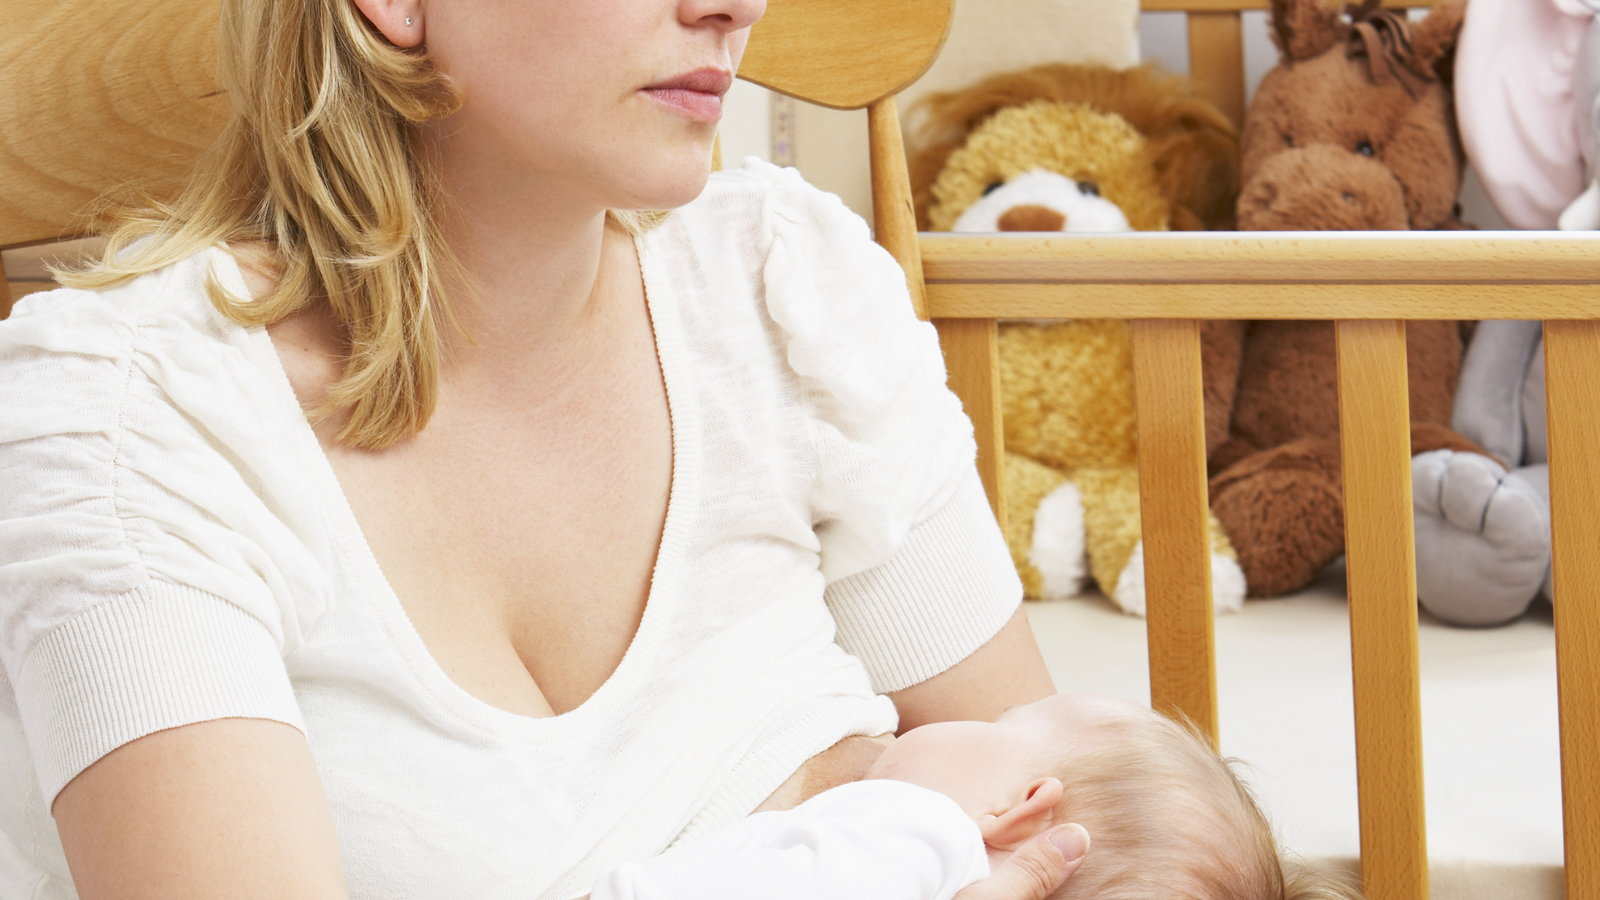 sad woman breastfeeding in rocking chair